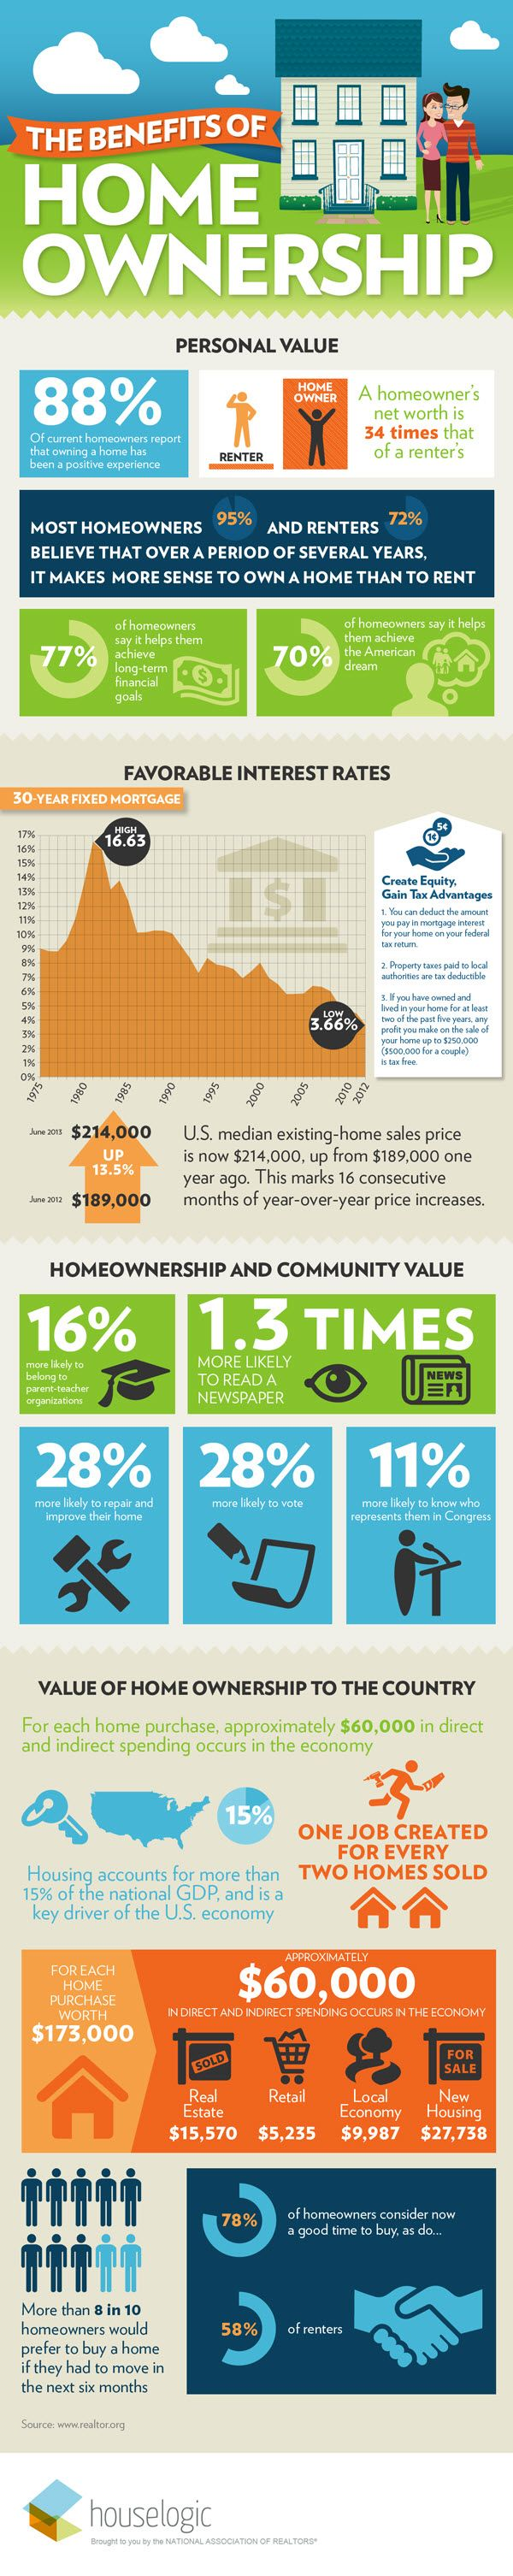 A great infographic on the benefits of homeownership... #realestate #infographic #homeowner